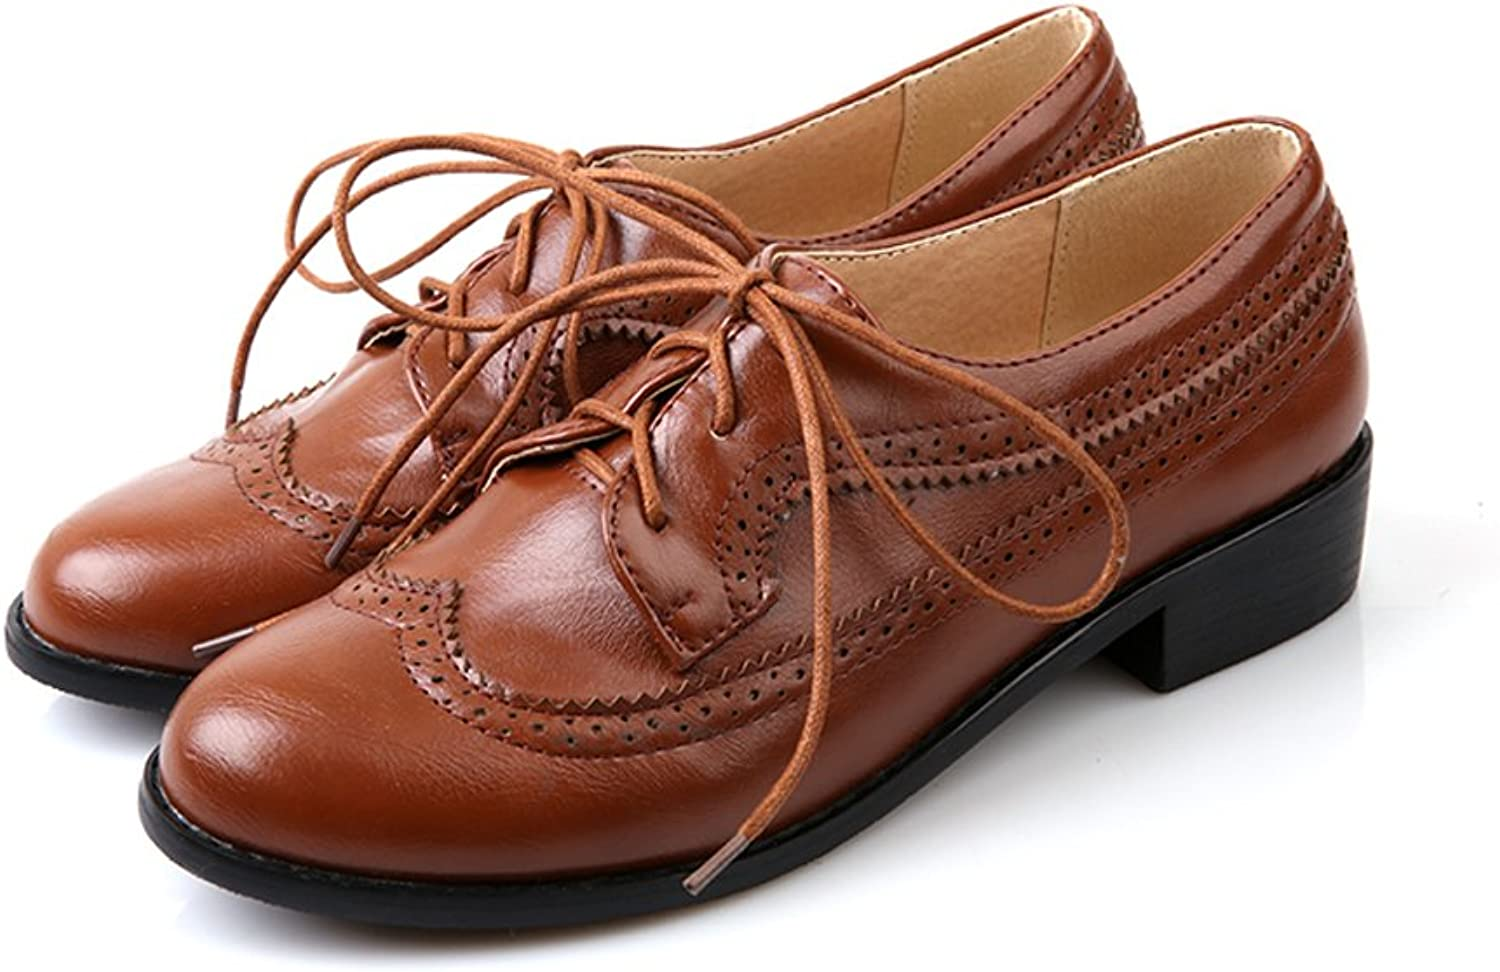 Lucksender Womens Lace Up Chunky Low Heel Oxford shoes